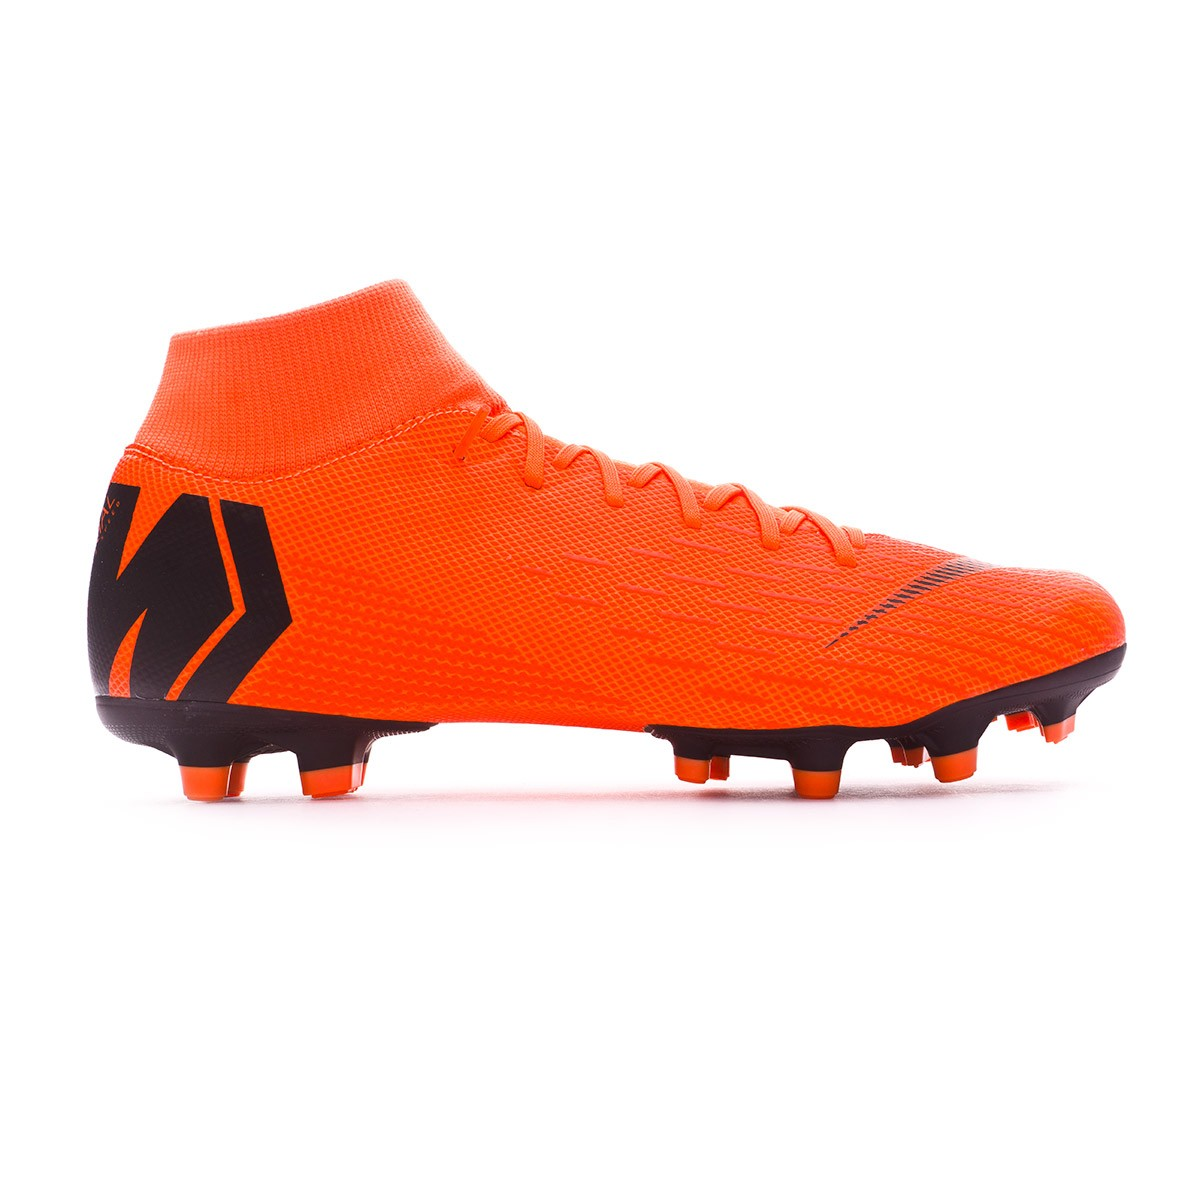 Boot Nike Mercurial Superfly VI Academy MG Total orange-Black-Total  orange-Volt - Leaked soccer 471185bbc8d2f